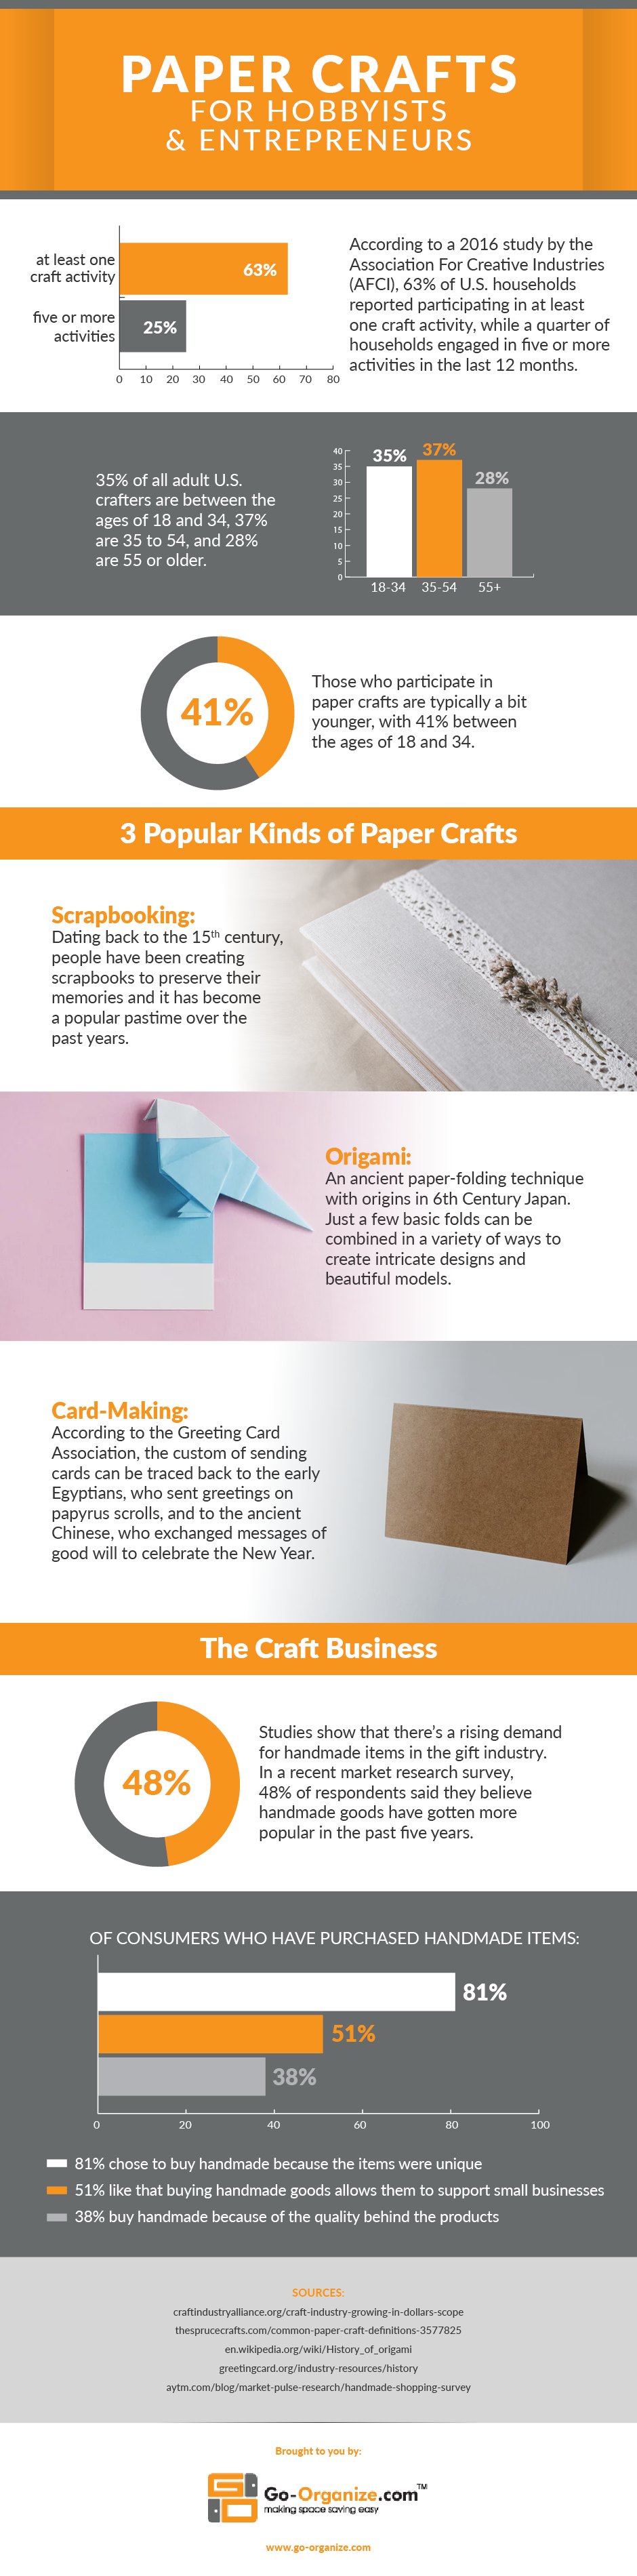 Paper Craft Facts What Hobbyists And Entrepreneurs Should Know